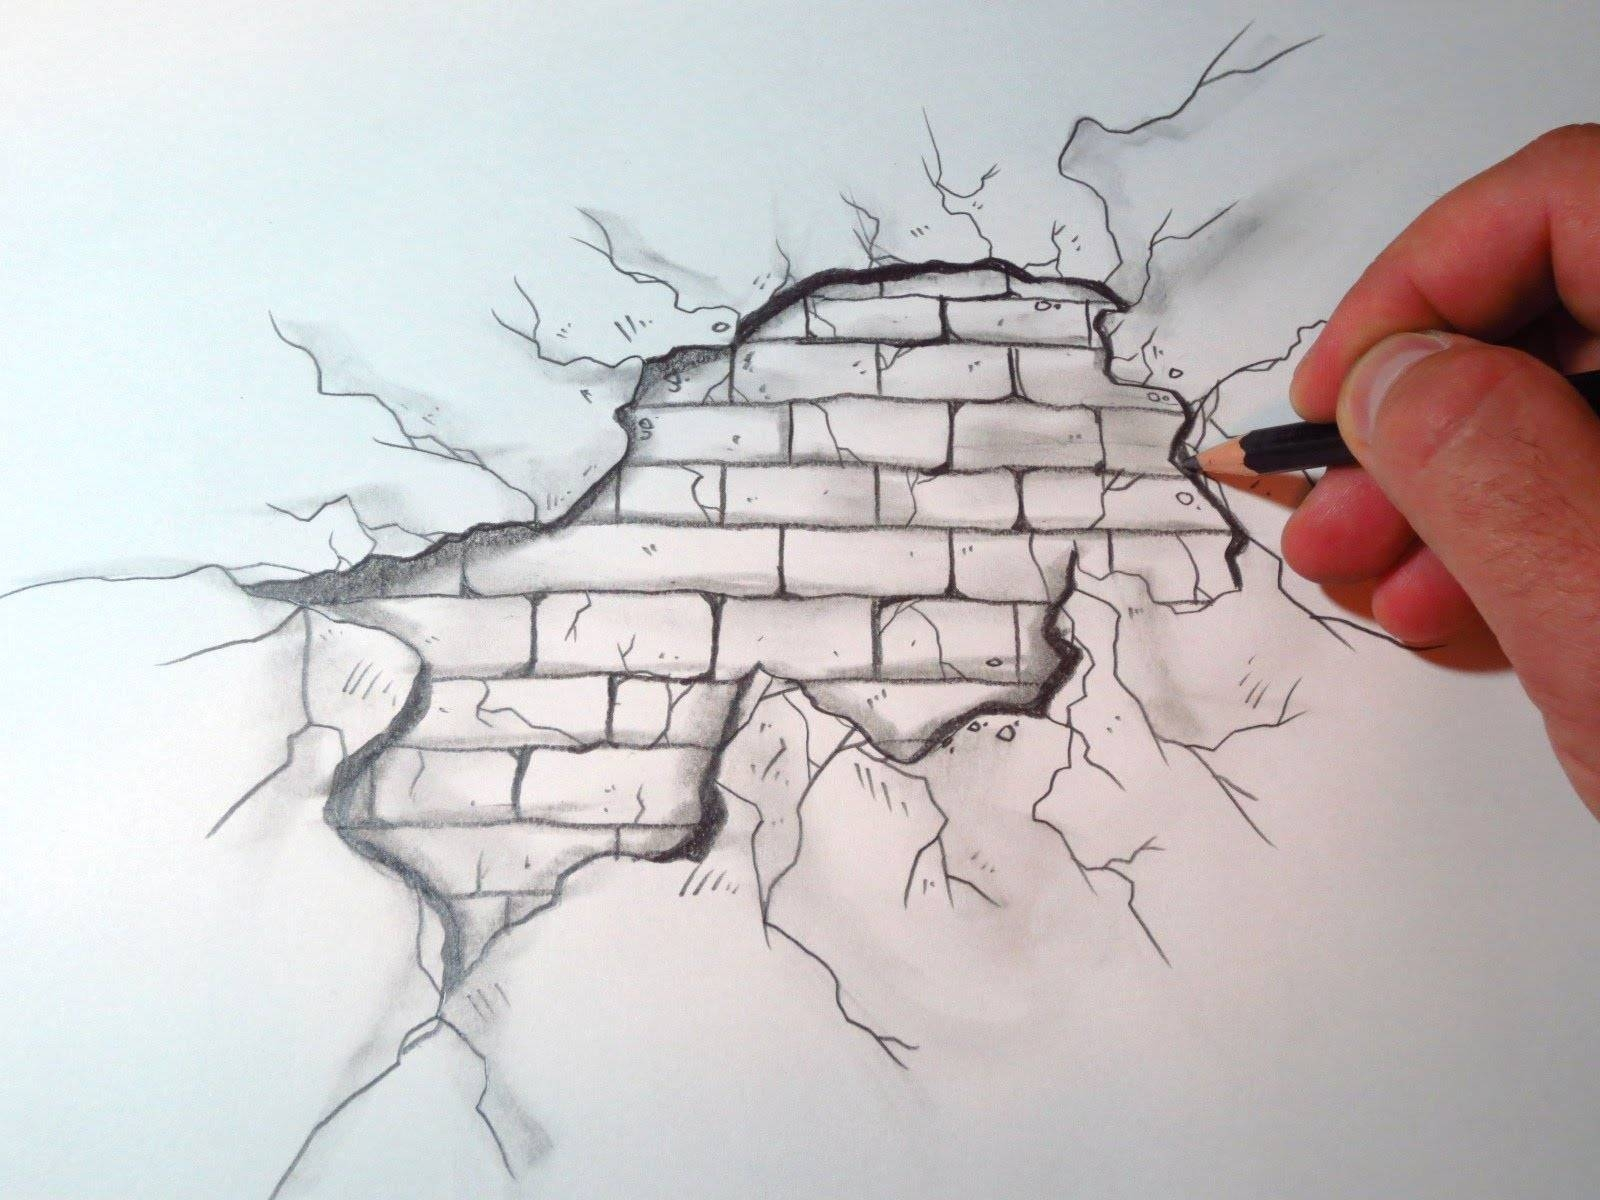 How To Draw A Cracked Brick Wall (The Original Video) – Youtube Pertaining To Current 3D Brick Wall Art (View 16 of 20)